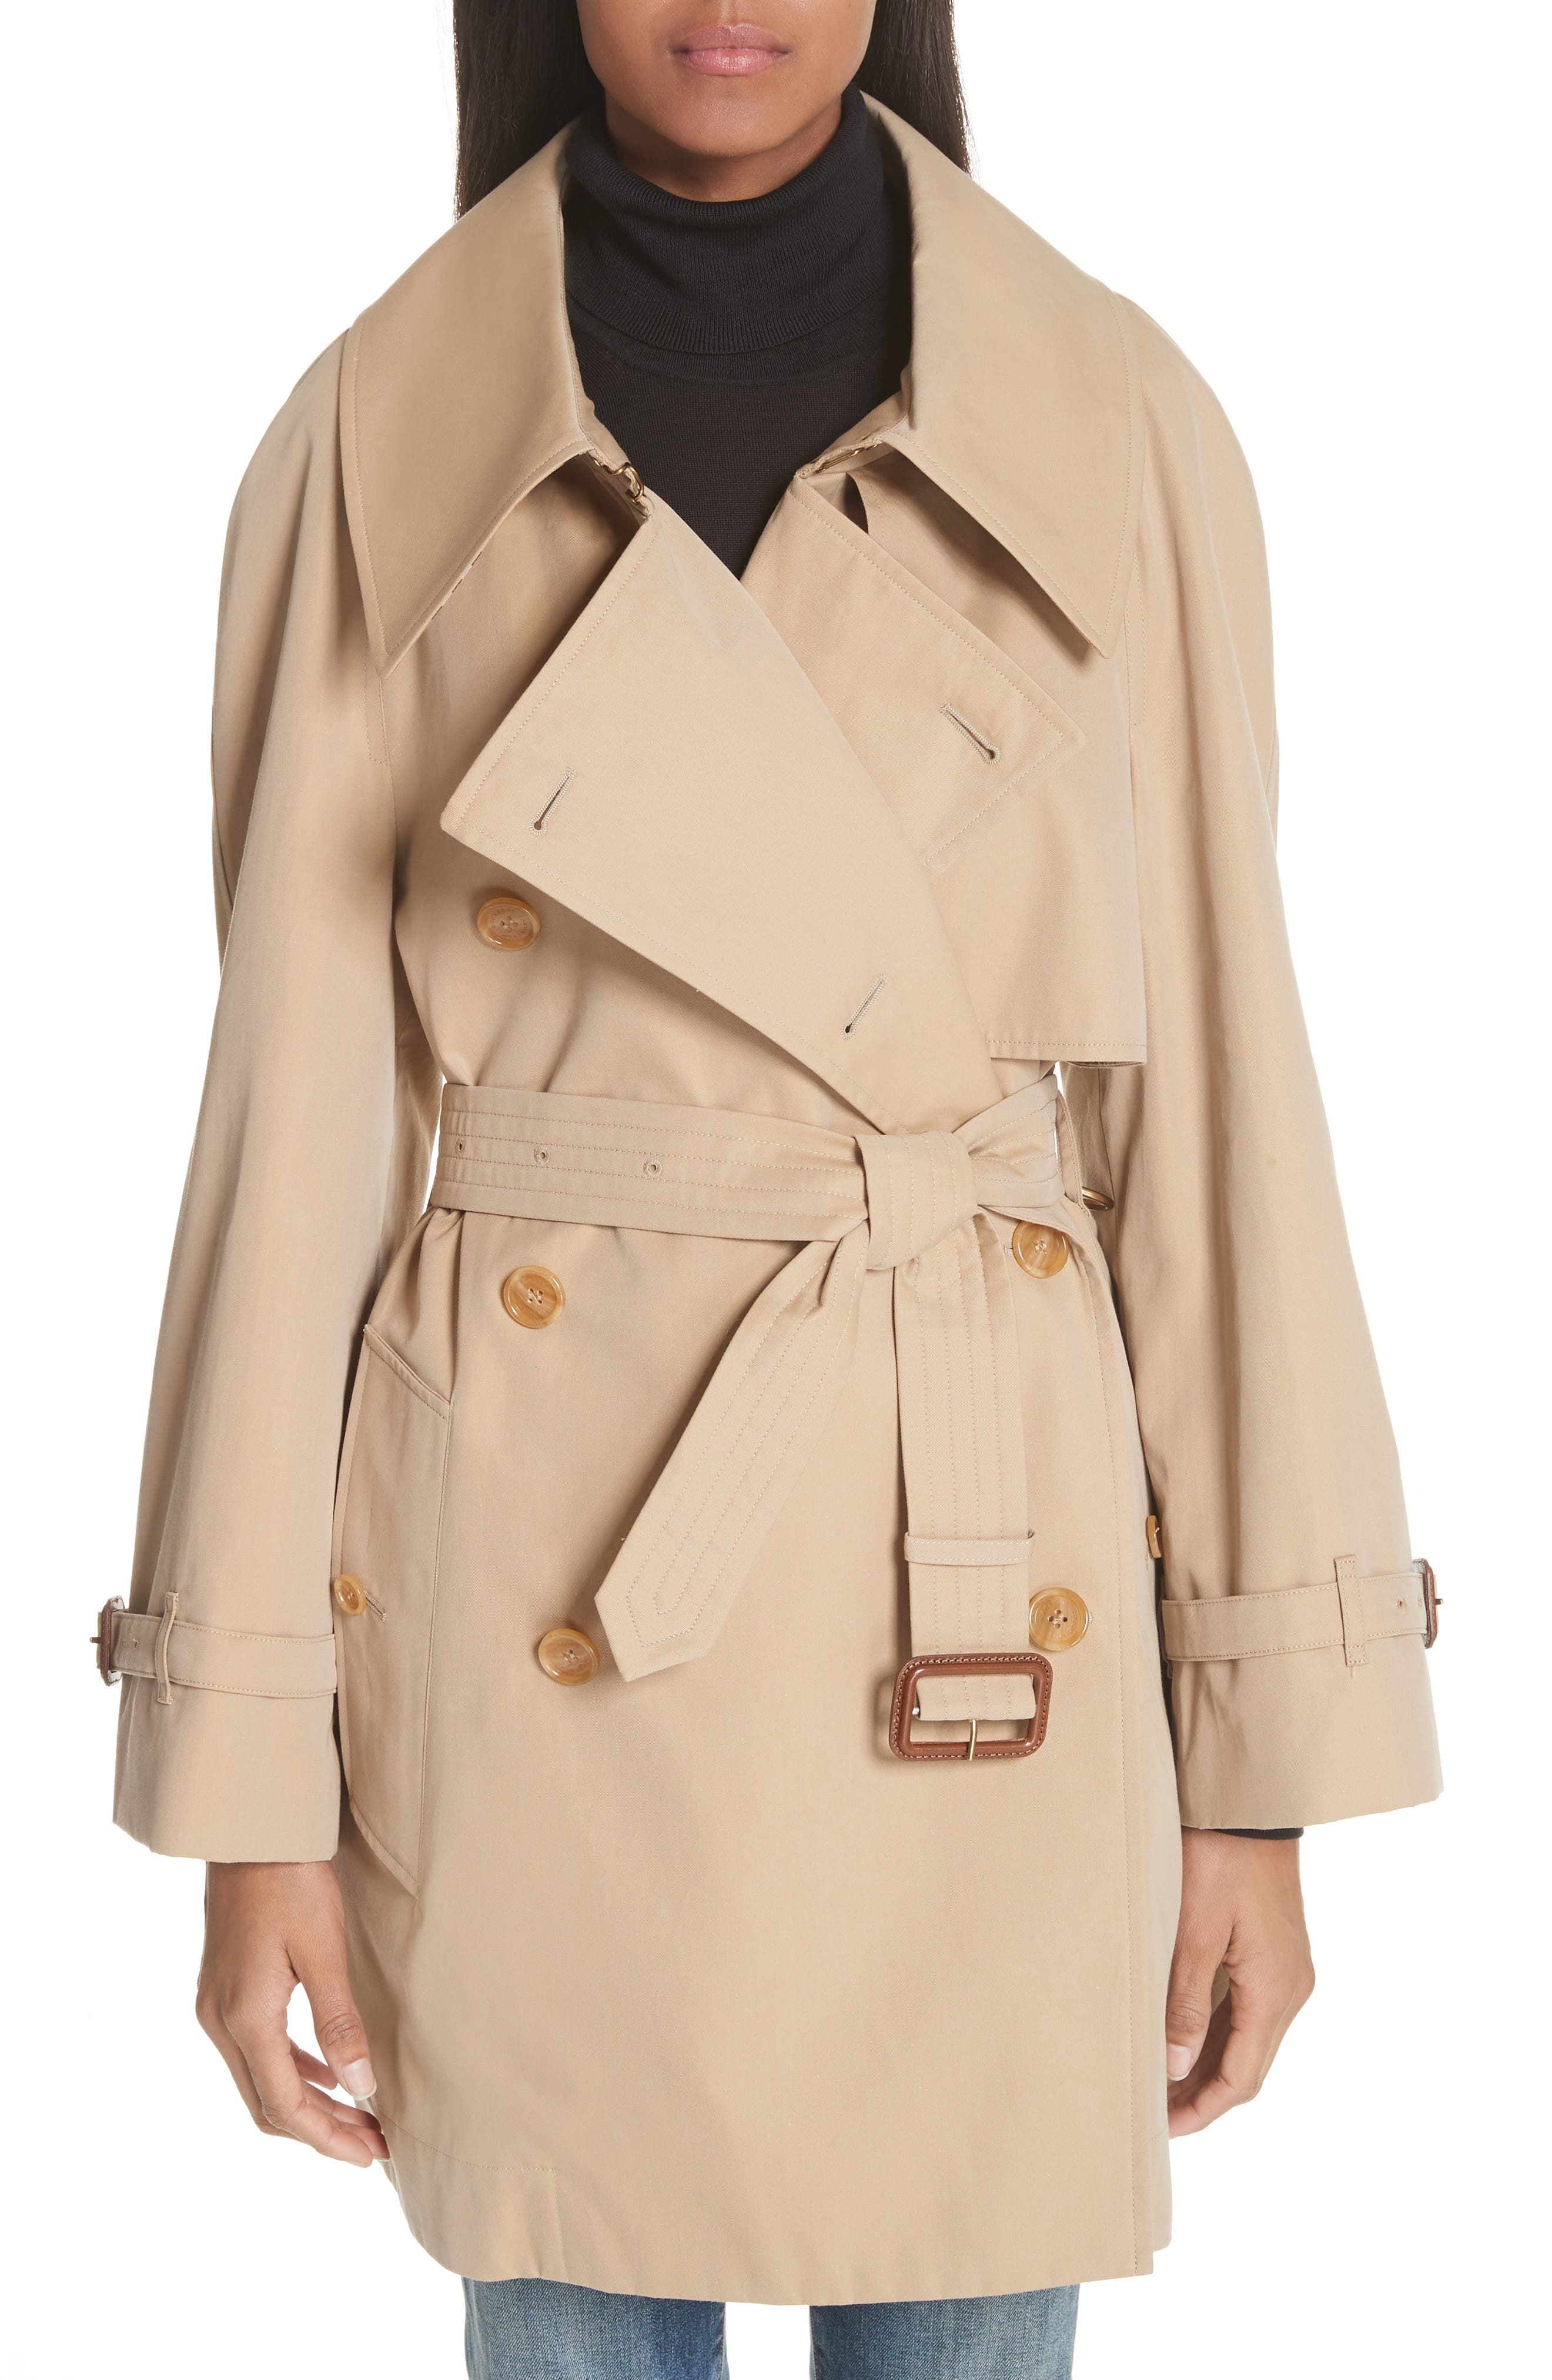 Fortingall Cotton Gabardine Trench Coat,                         Main,                         color, 255